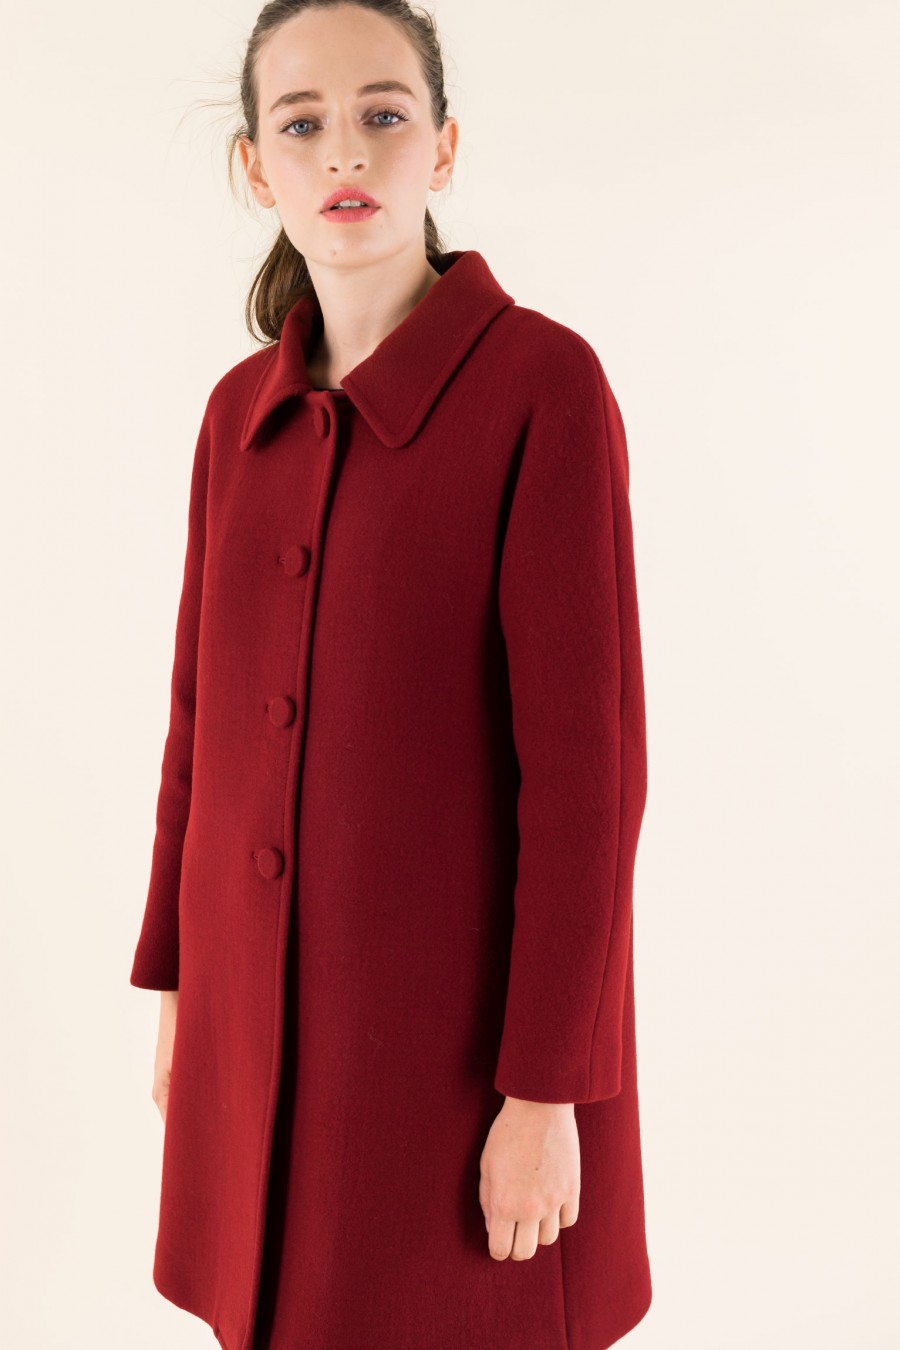 Red coat in double fabric